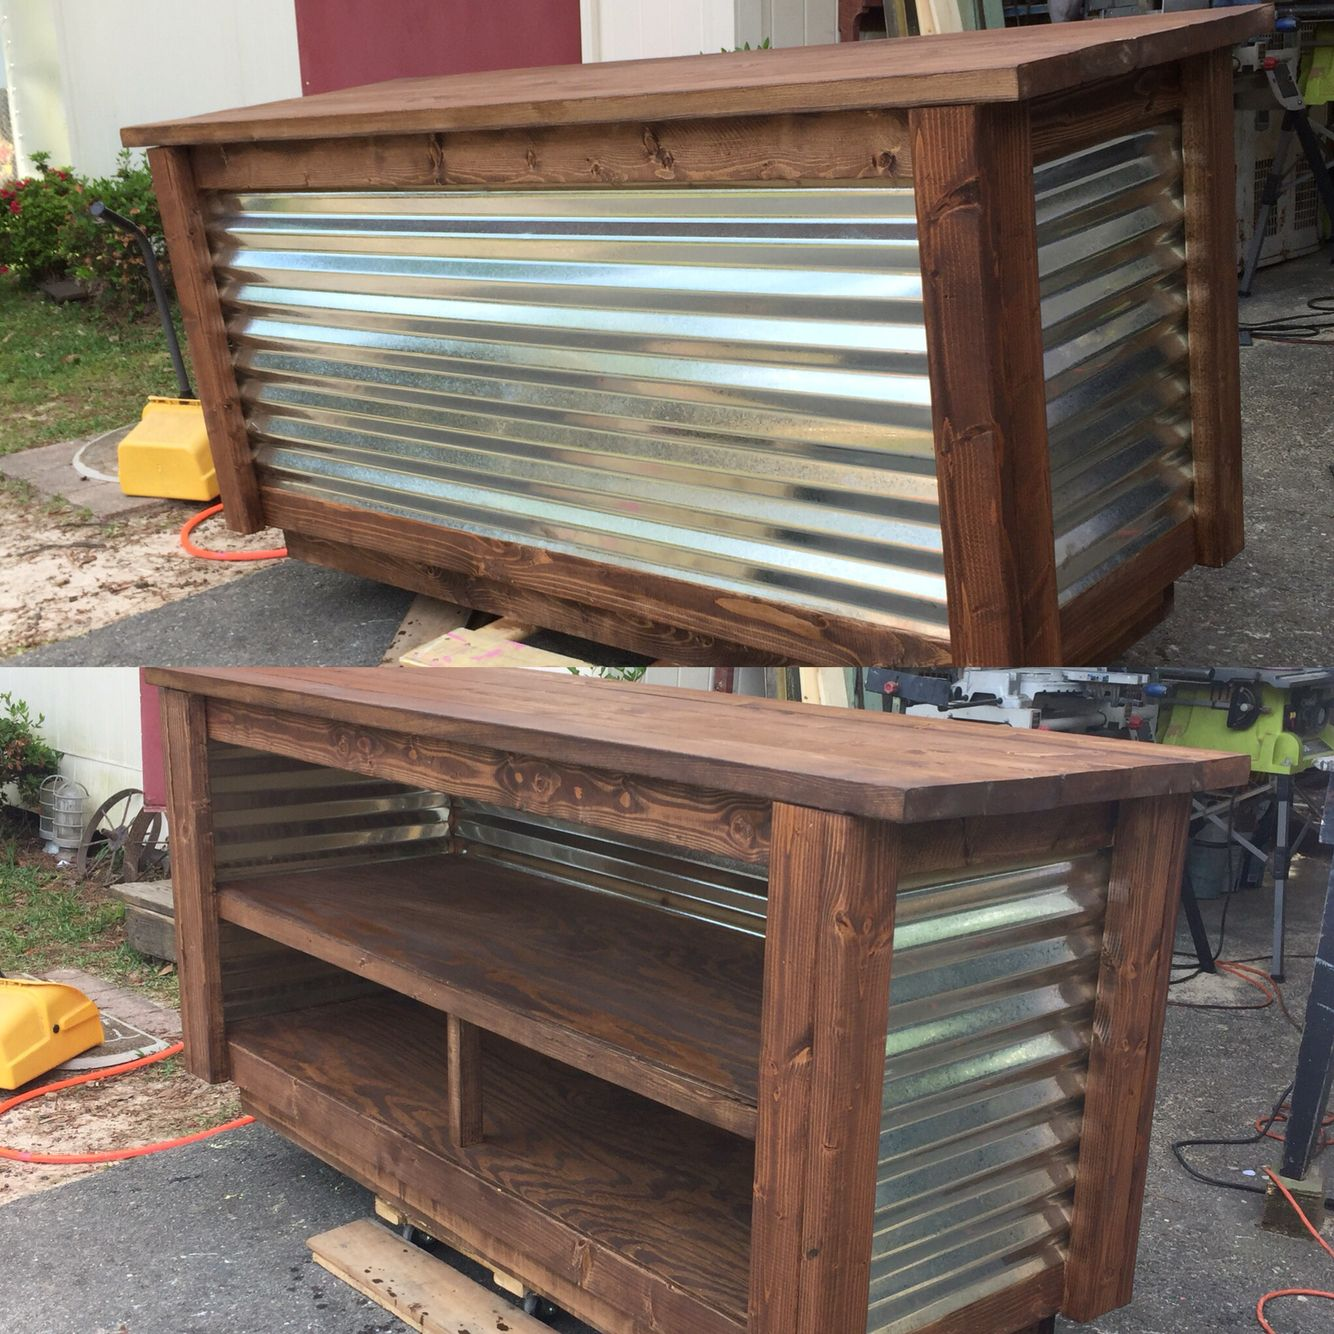 Another cash wrap made from pallets and corrugated tin ...